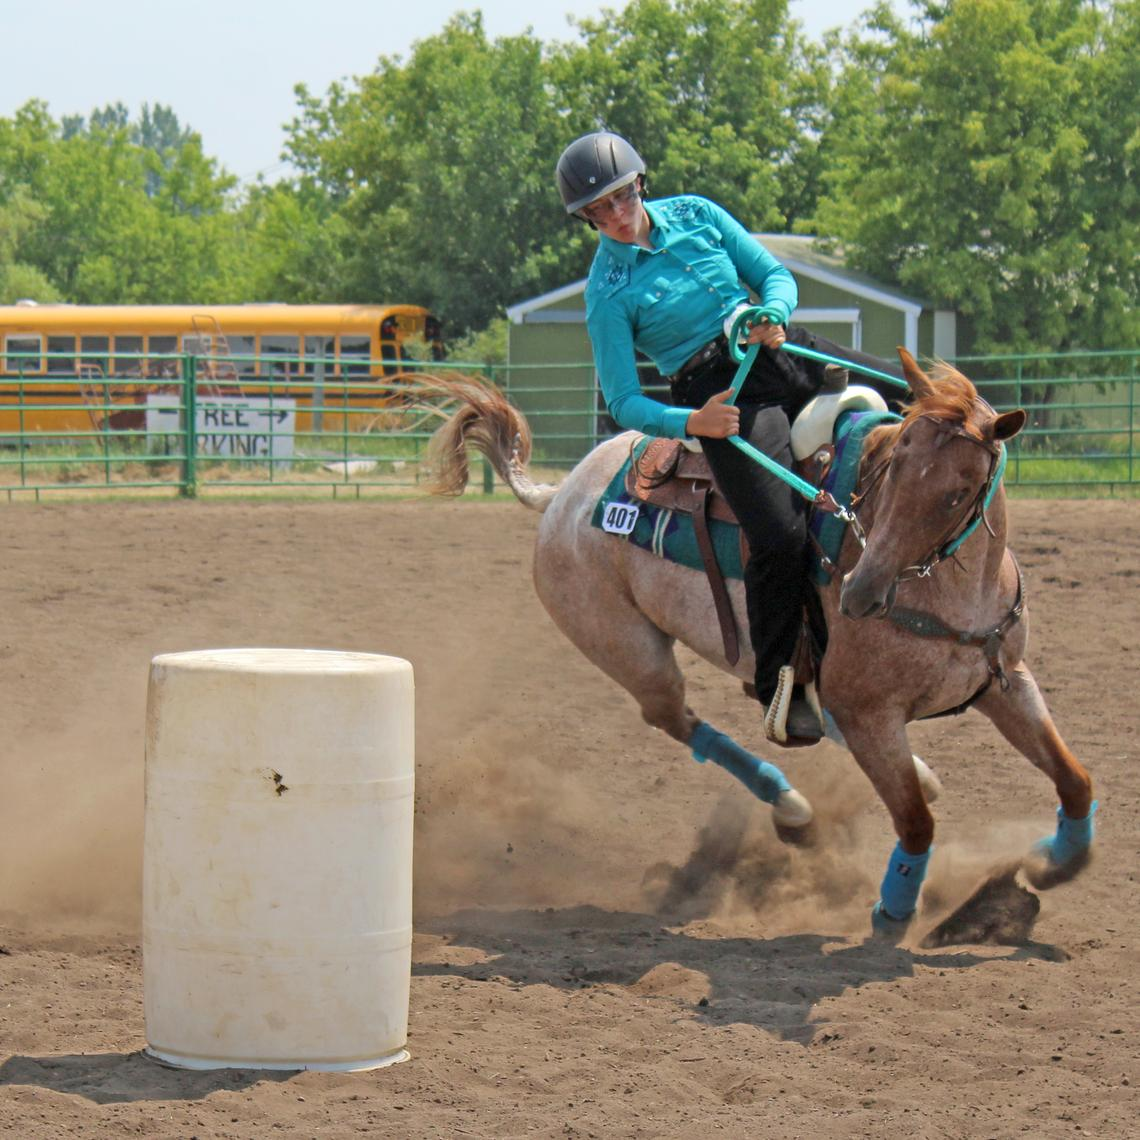 Maggie Kay Carter and her red roan quarter horse Bunny lean hard into a turn during the barrel racing event at the 4-H Riders show Thursday, July 15 at the 2021 Hubbard County Fair. (Robin Fish/Enterprise)